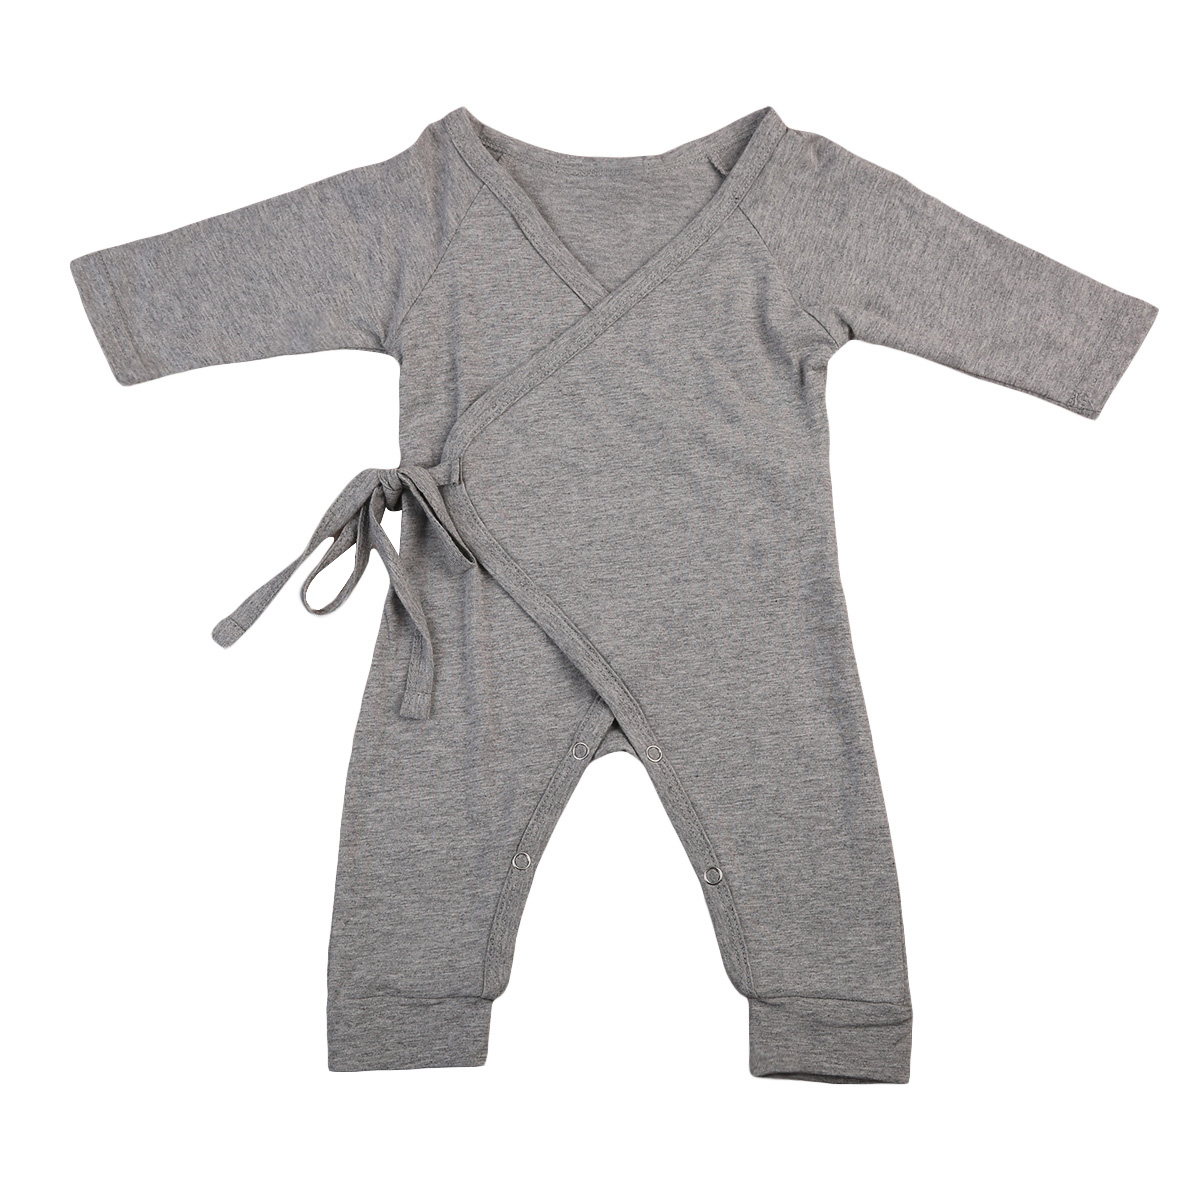 Newborn Kids Baby Boy Girls Infant Clothing Romper Jumpsuit Long Sleeve Cotton Casual Clothes Outfits Baby Boys newborn baby rompers baby clothing 100% cotton infant jumpsuit ropa bebe long sleeve girl boys rompers costumes baby romper